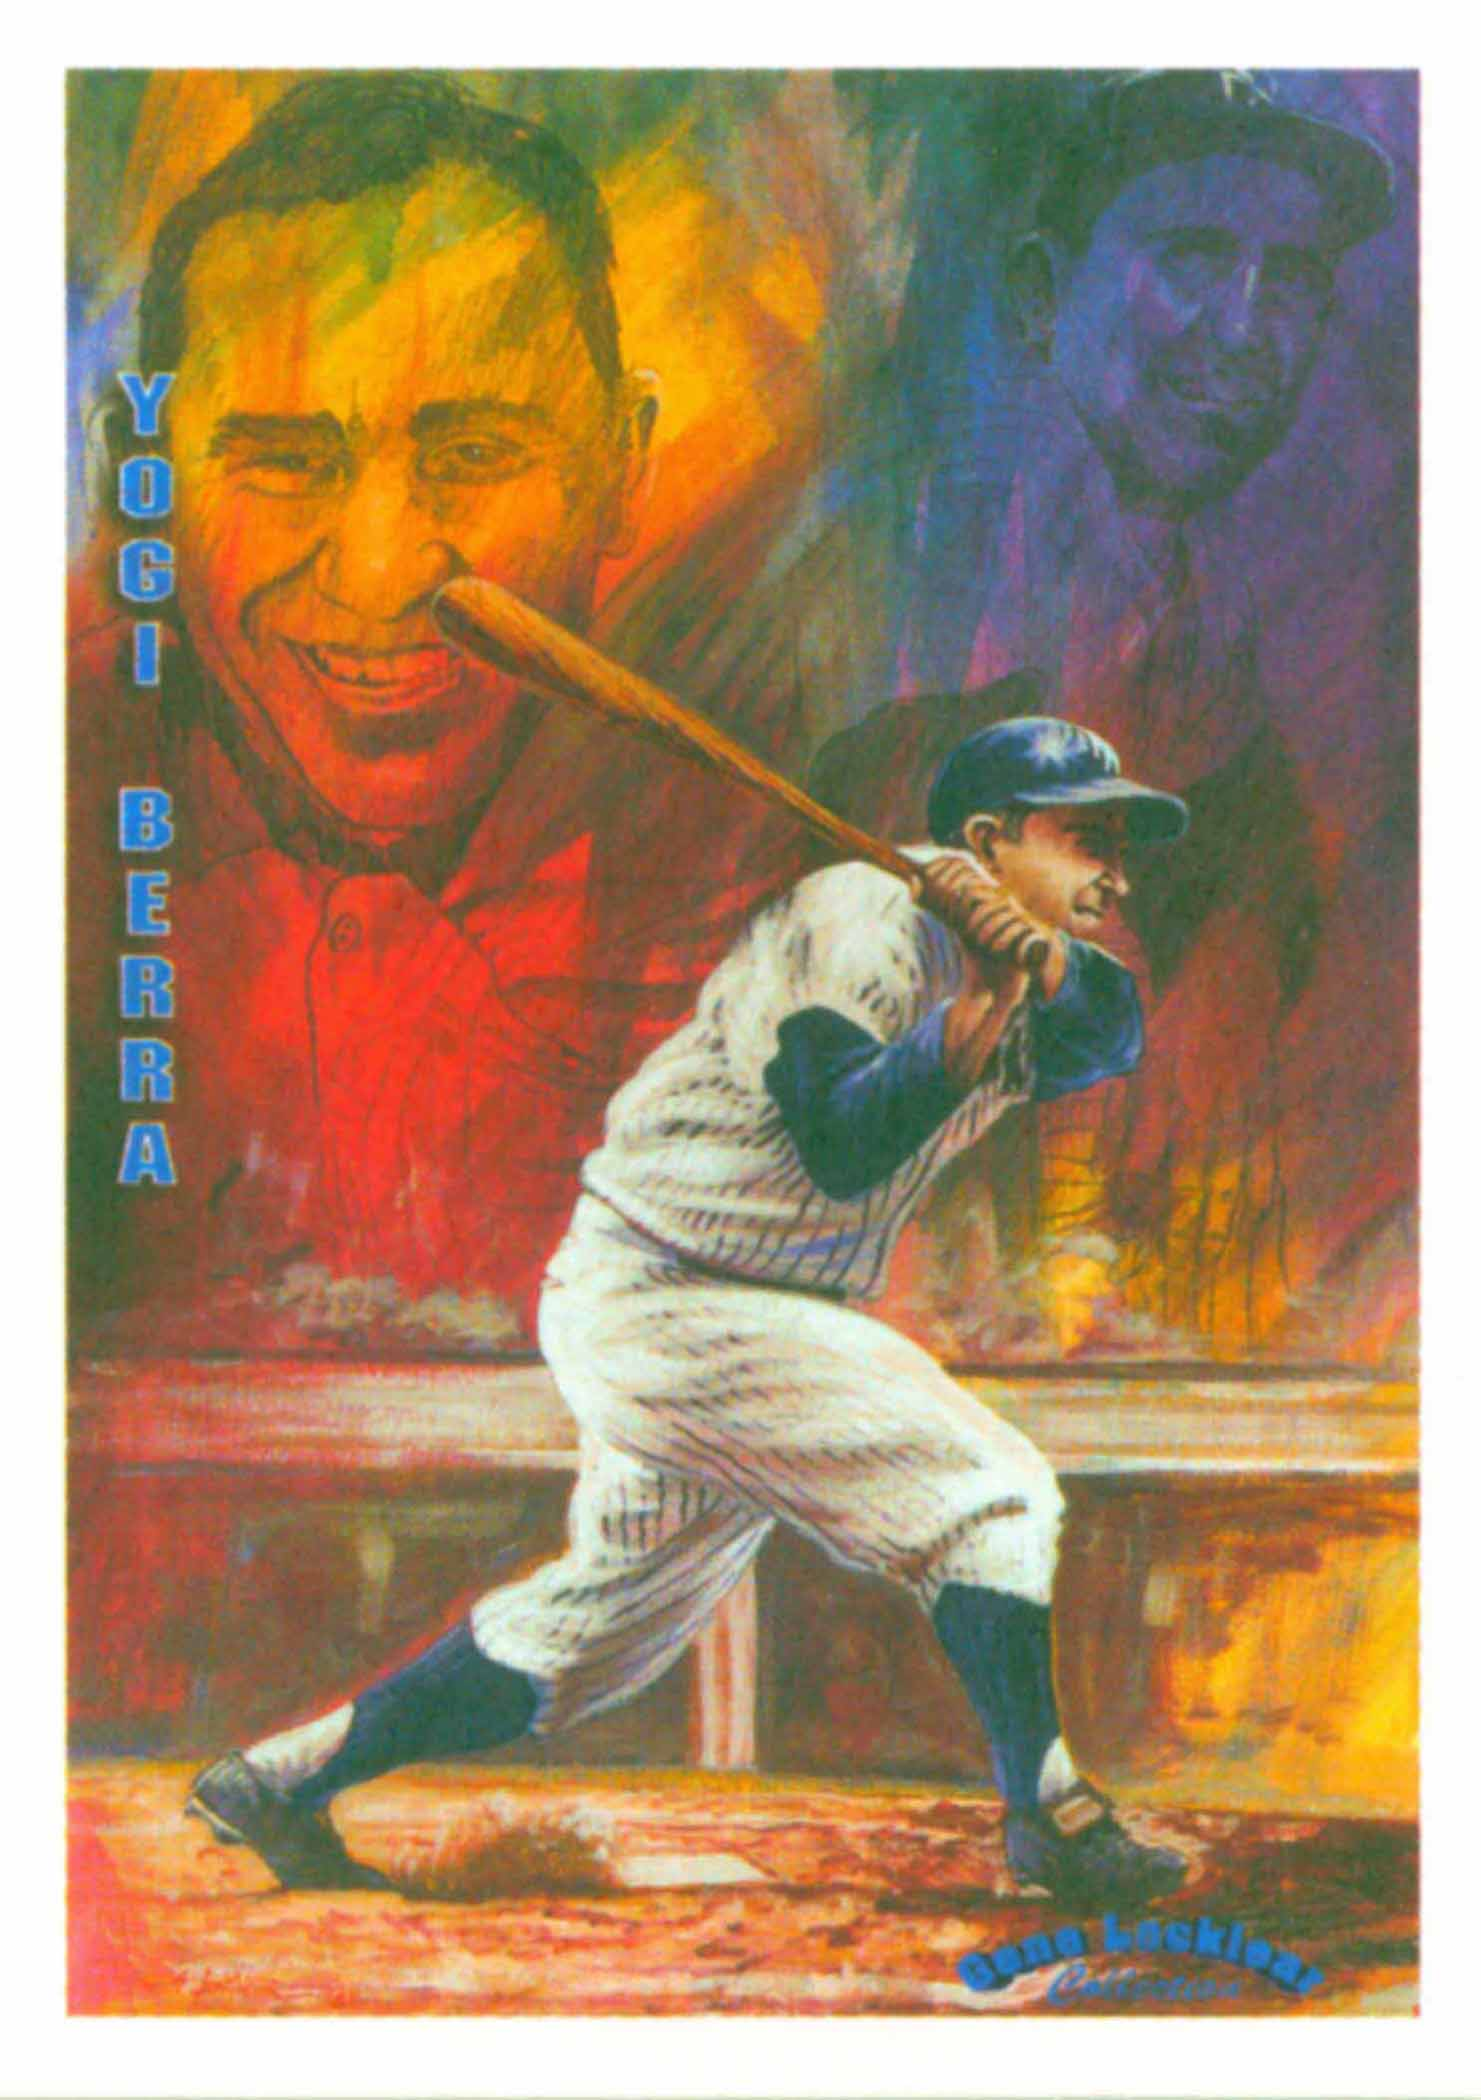 1993 Ted Williams Locklear Collection